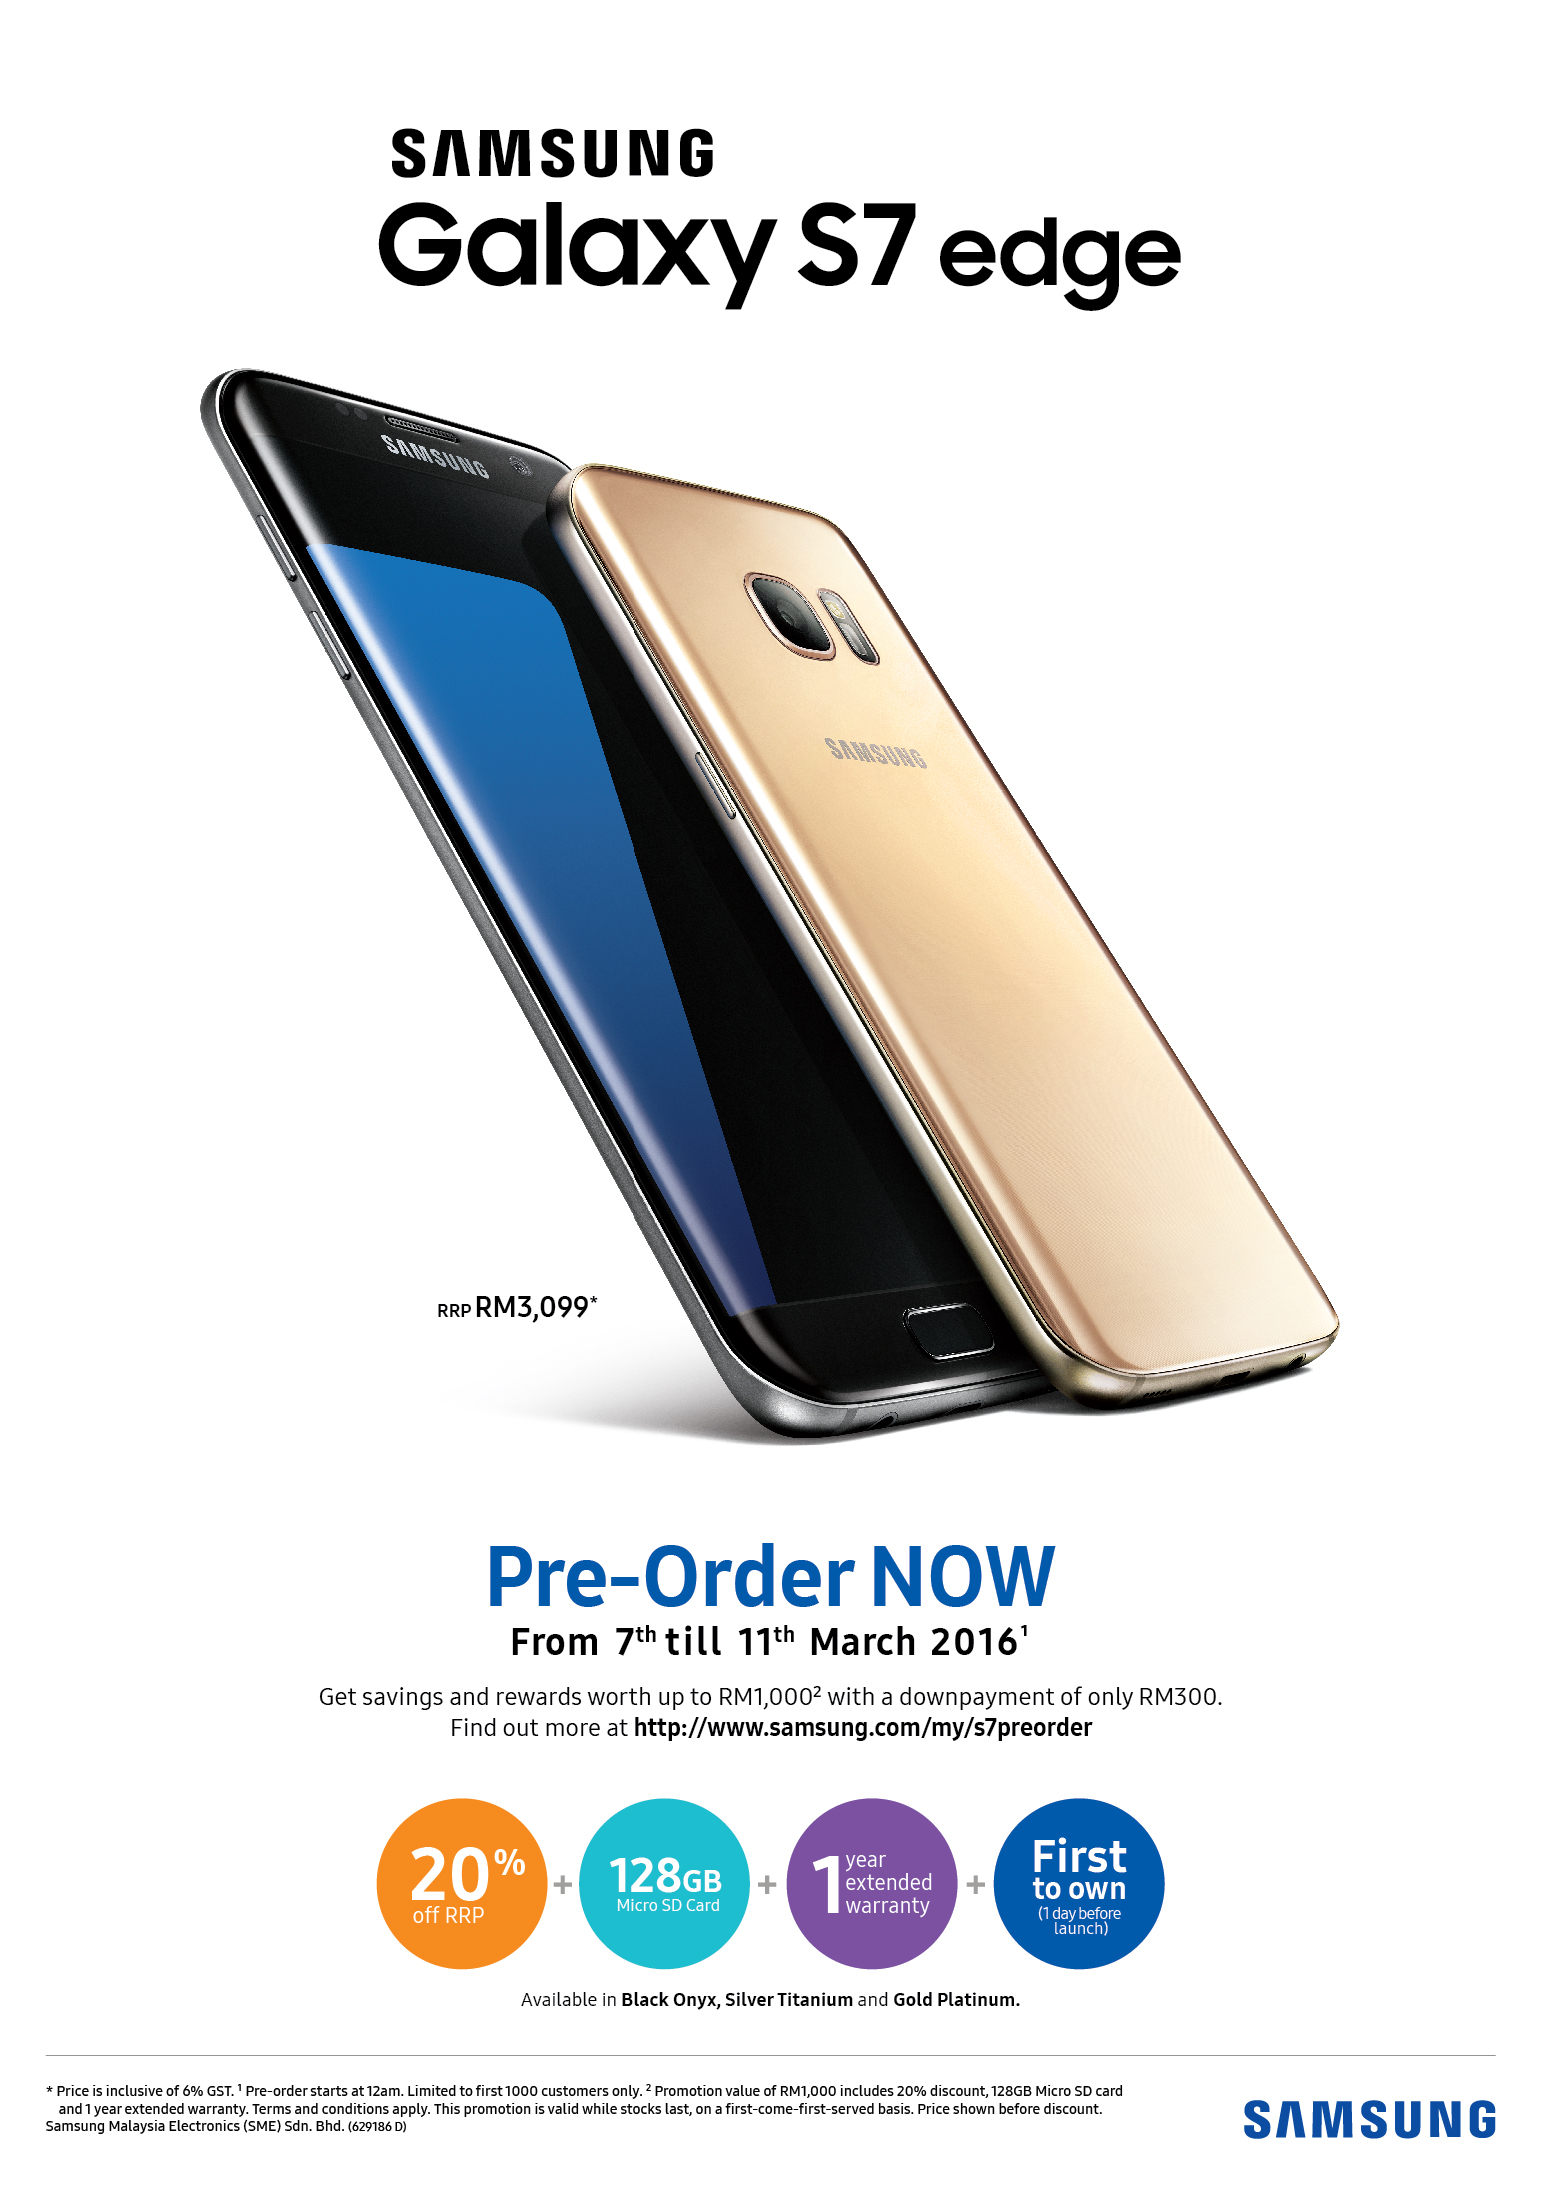 Samsung Galaxy S7 edge Pre-order Promotion